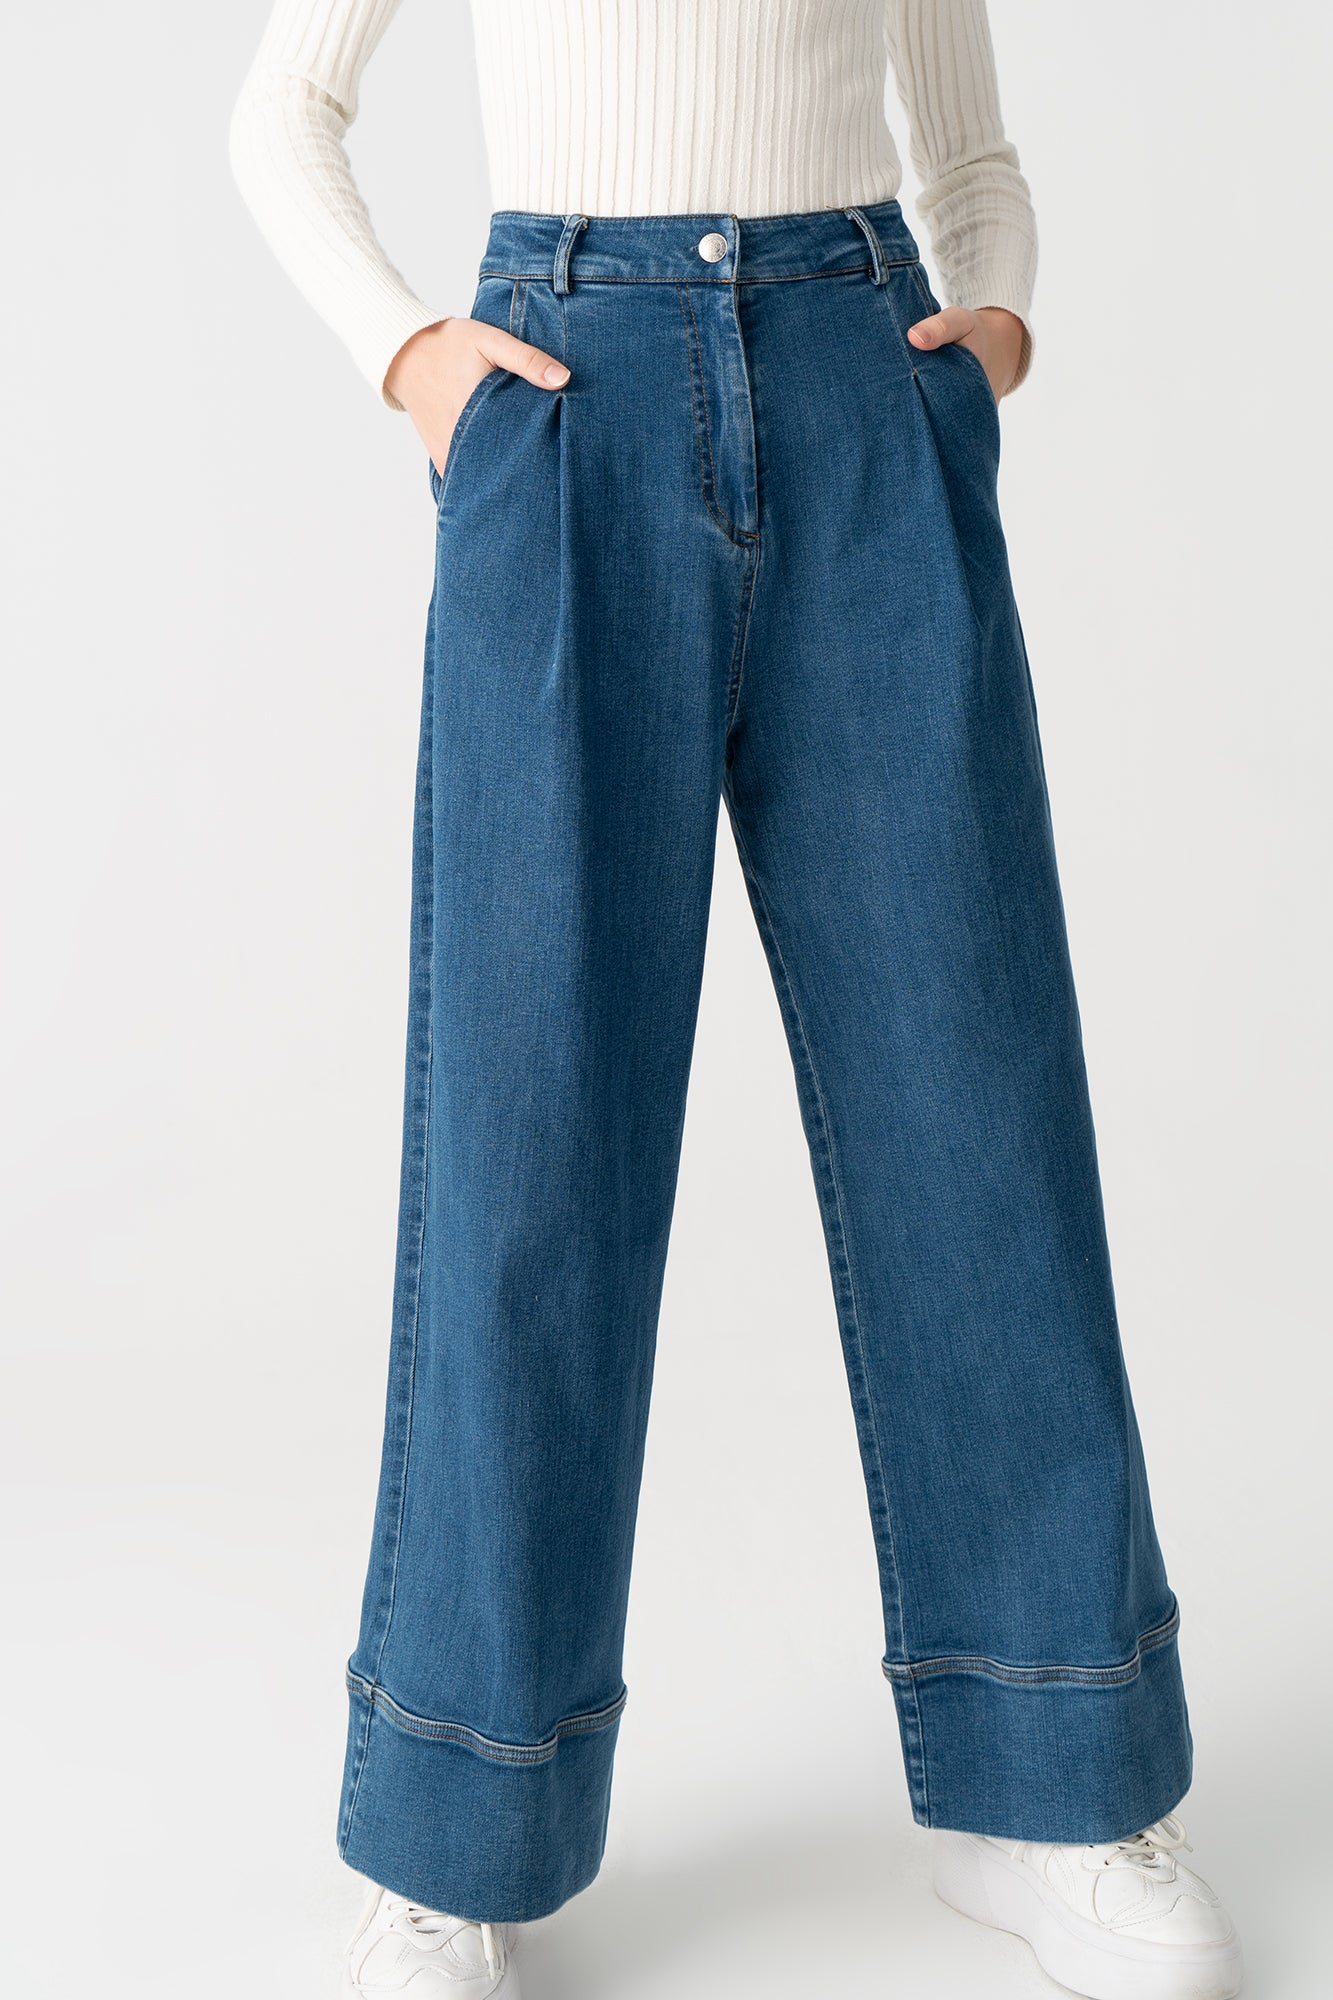 Prive Denim Pantolon